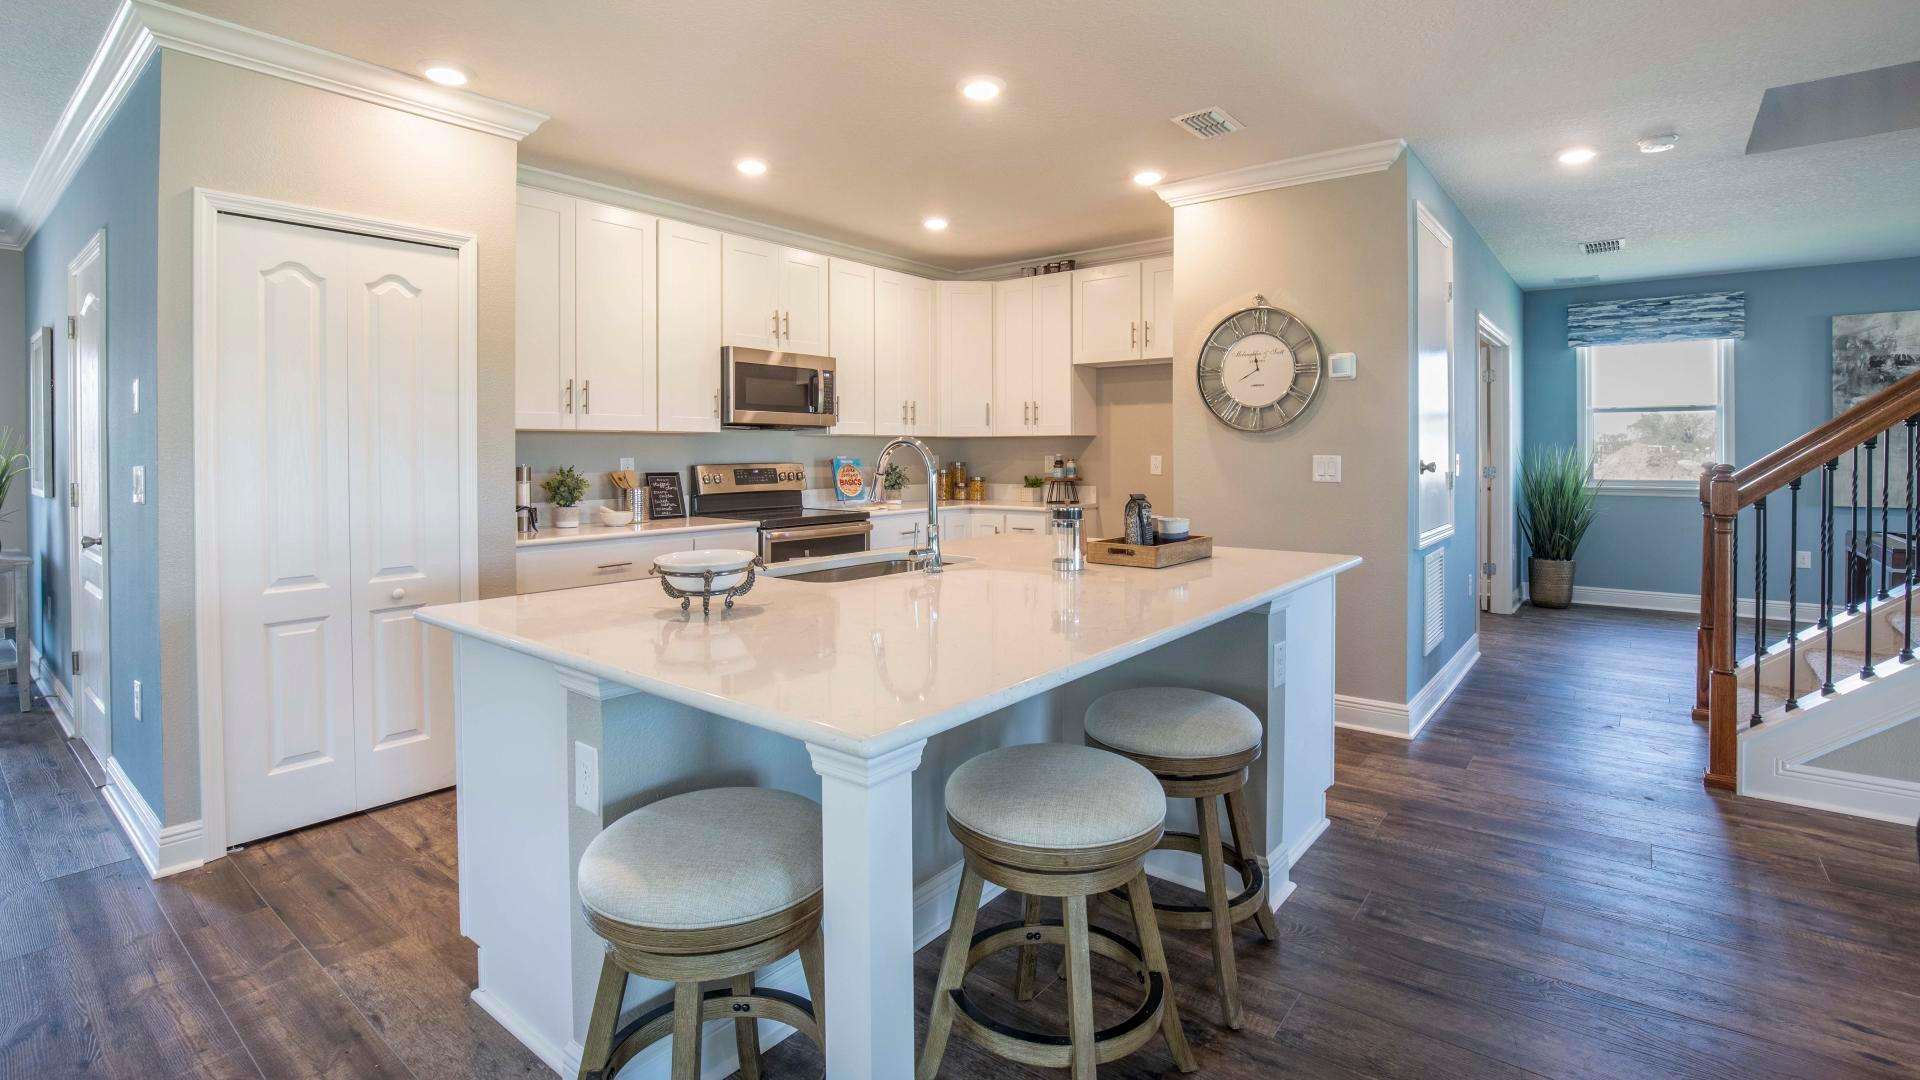 Kitchen featured in the Columbus By Maronda Homes in Daytona Beach, FL